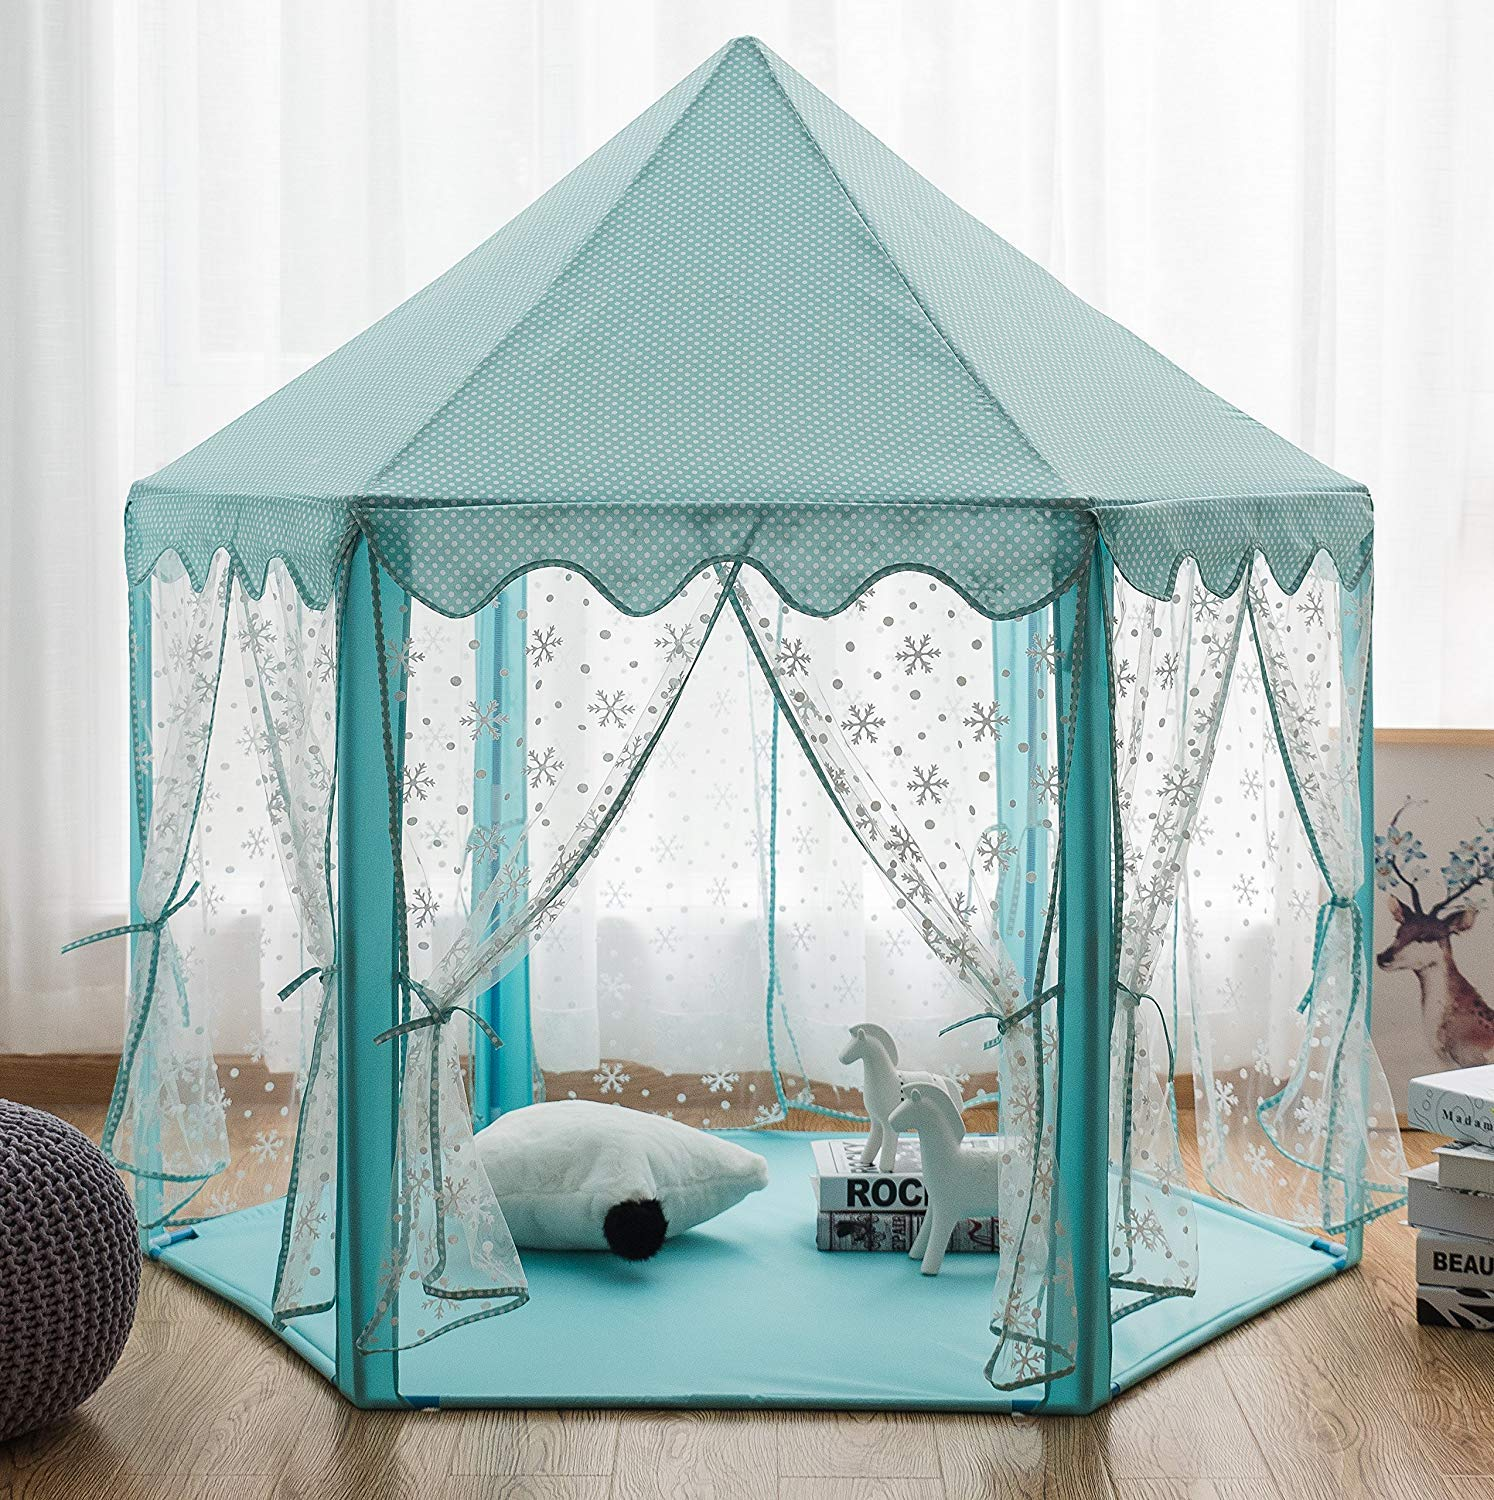 [Pericross] [Pericross プリンセスプレイテント Snowflake Veil Hexagon Princess Play Tent with Aluminum Alloy Frame and 33ft 100 Diodes LED Brass Wire Lights ] (並行輸入品) B07GWRRNWF Cyan One Size